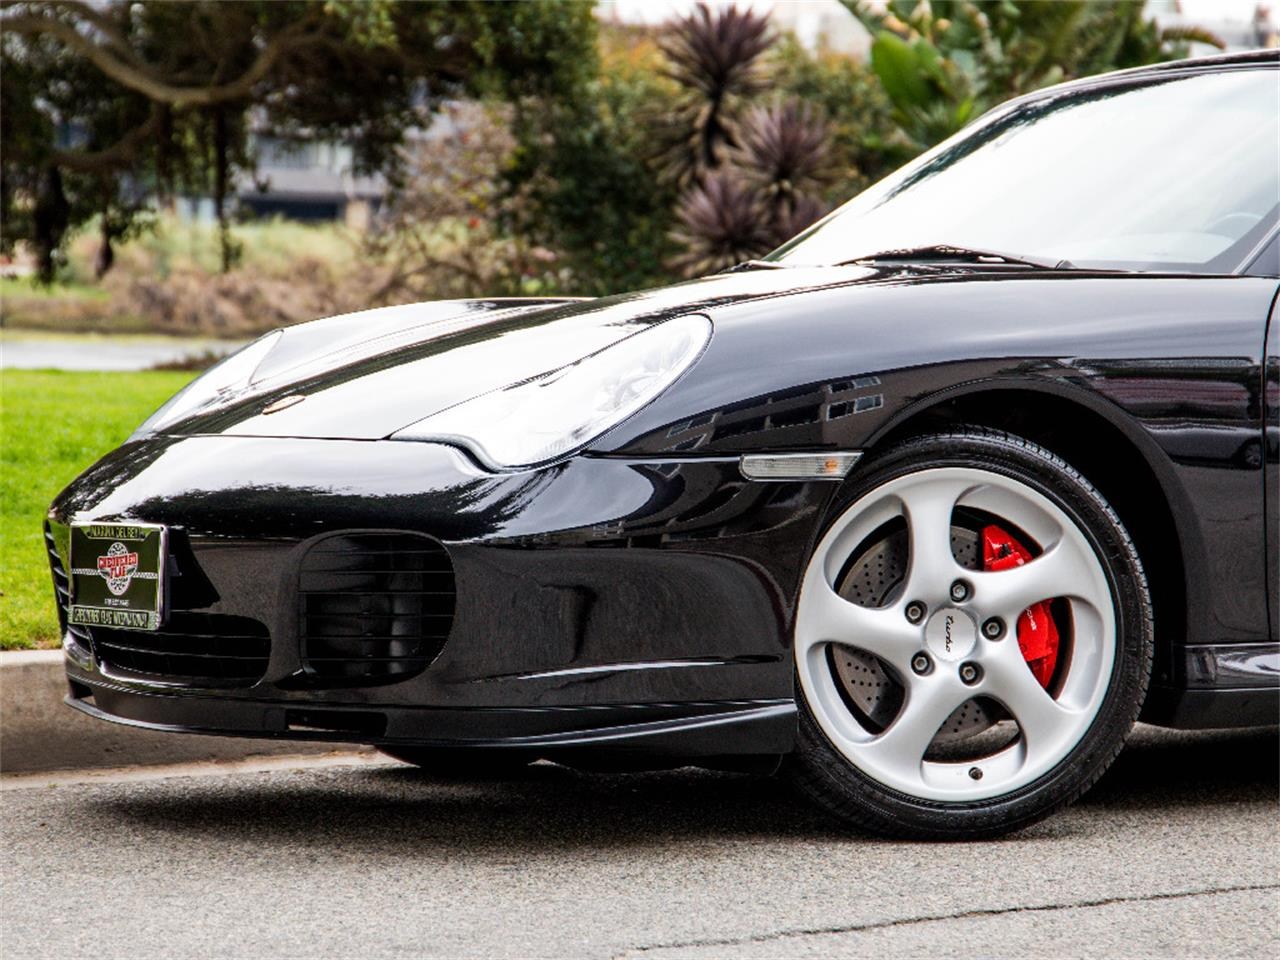 Large Picture of '02 Porsche 911 Turbo located in Marina Del Rey California - $74,500.00 Offered by Chequered Flag International - NVVR